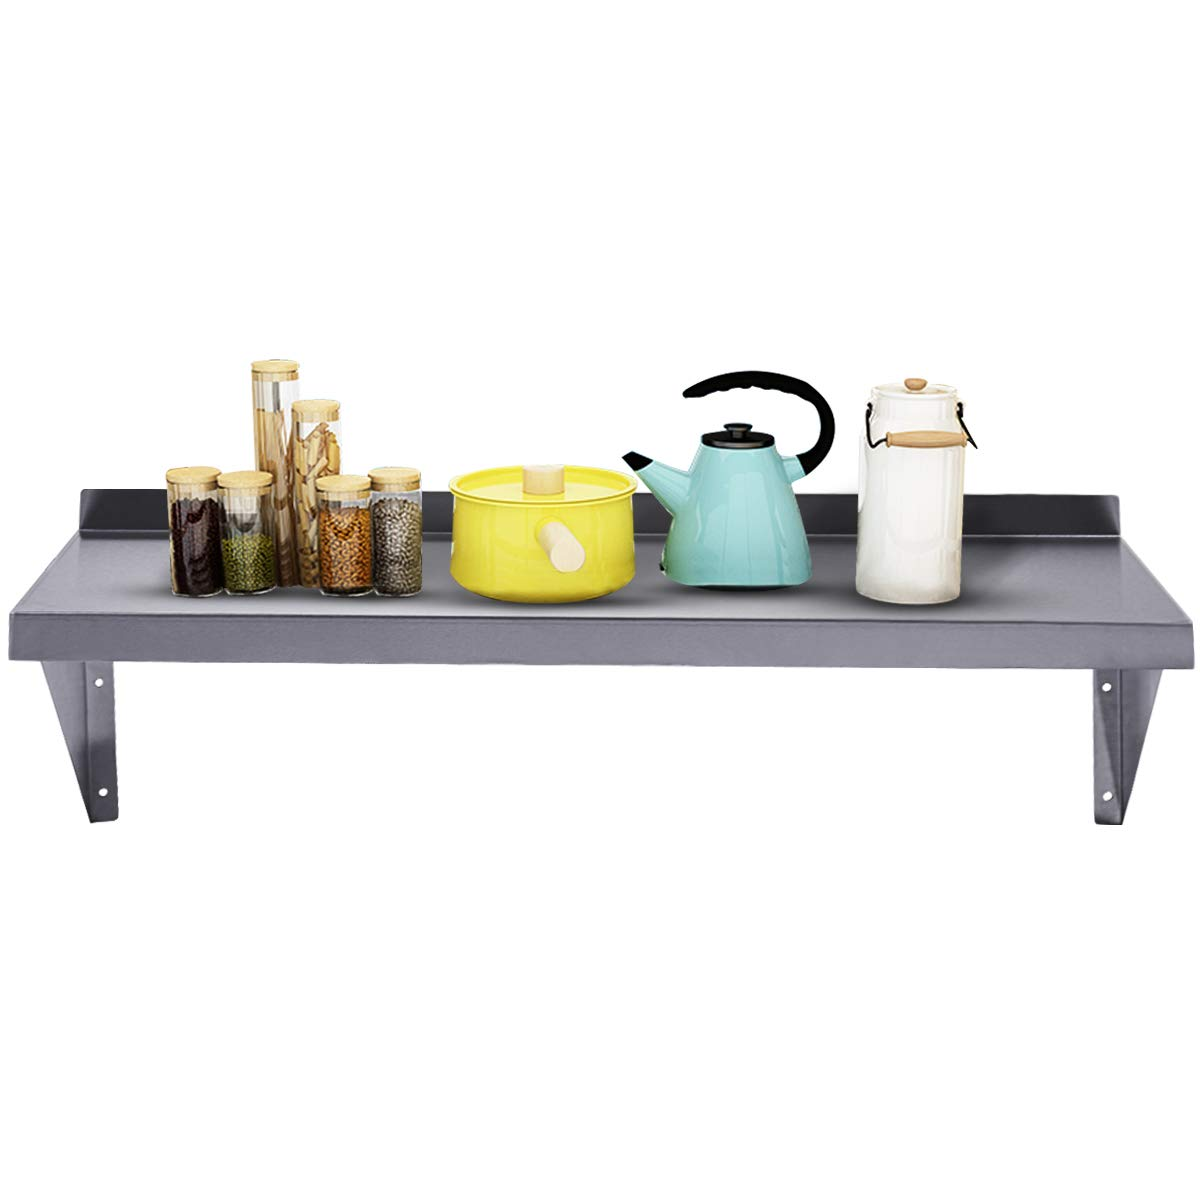 JAXPETY Commercial Stainless Steel Restaurant Bar Cafe Kitchen Floating Wall Shelf 12''X36'' Premium Quality New